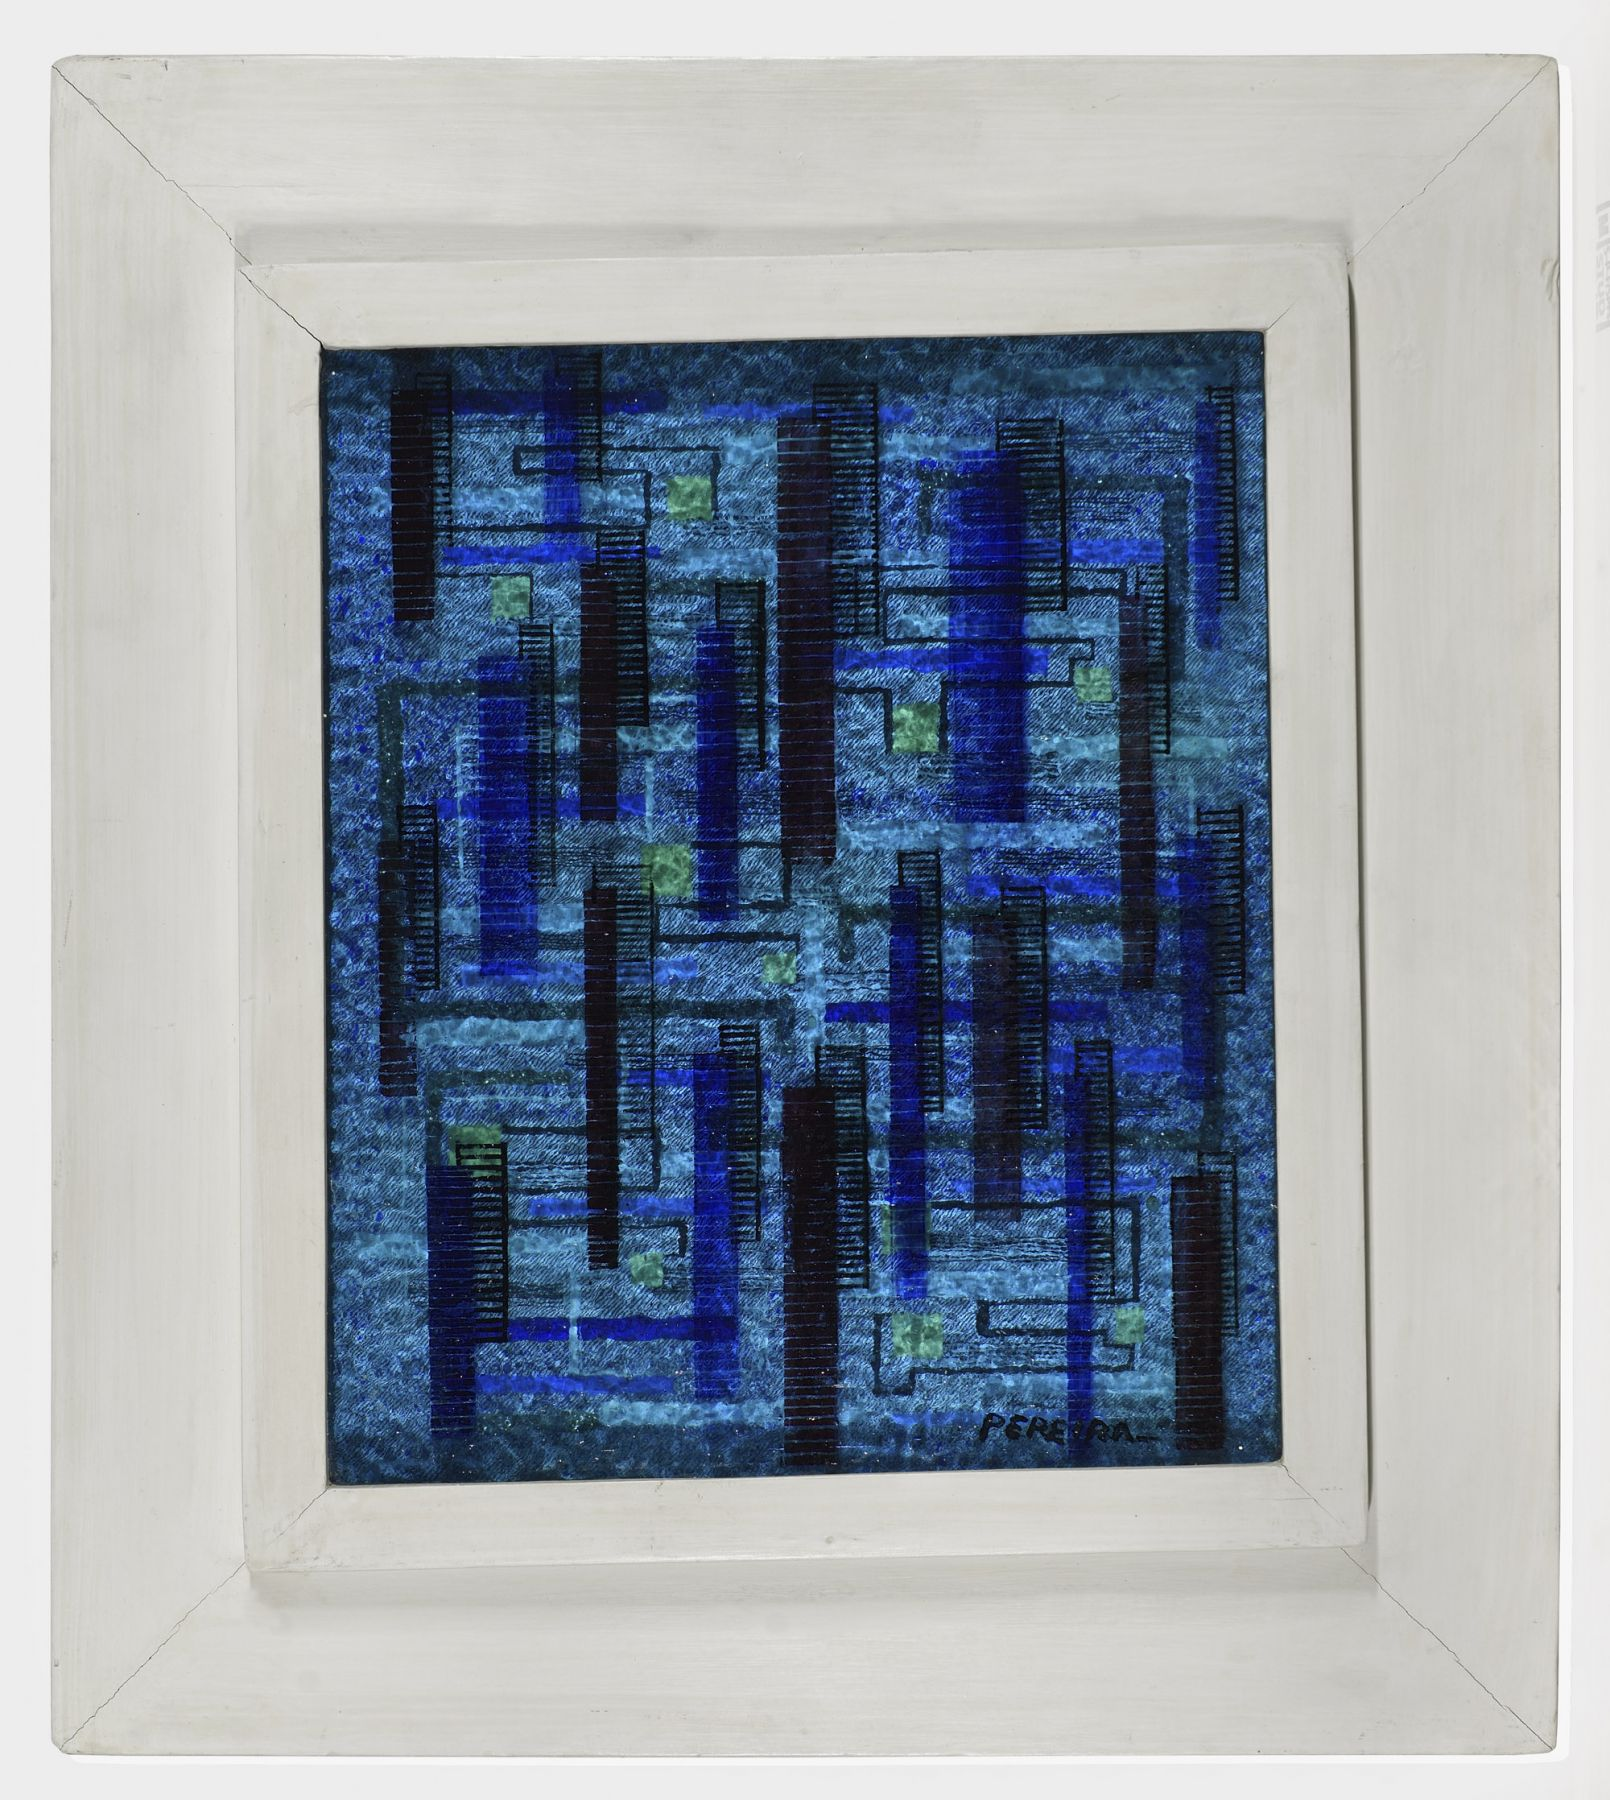 irene rice pereira, Three-Dimensional Composition in Blue, c. 1940 painted glass and board construction  11 1/2 x 9 1/2 x 1 1/8 inches  artist's shadow box frame: 17 1/8 x 15 7/8 x 1 5/8 inches